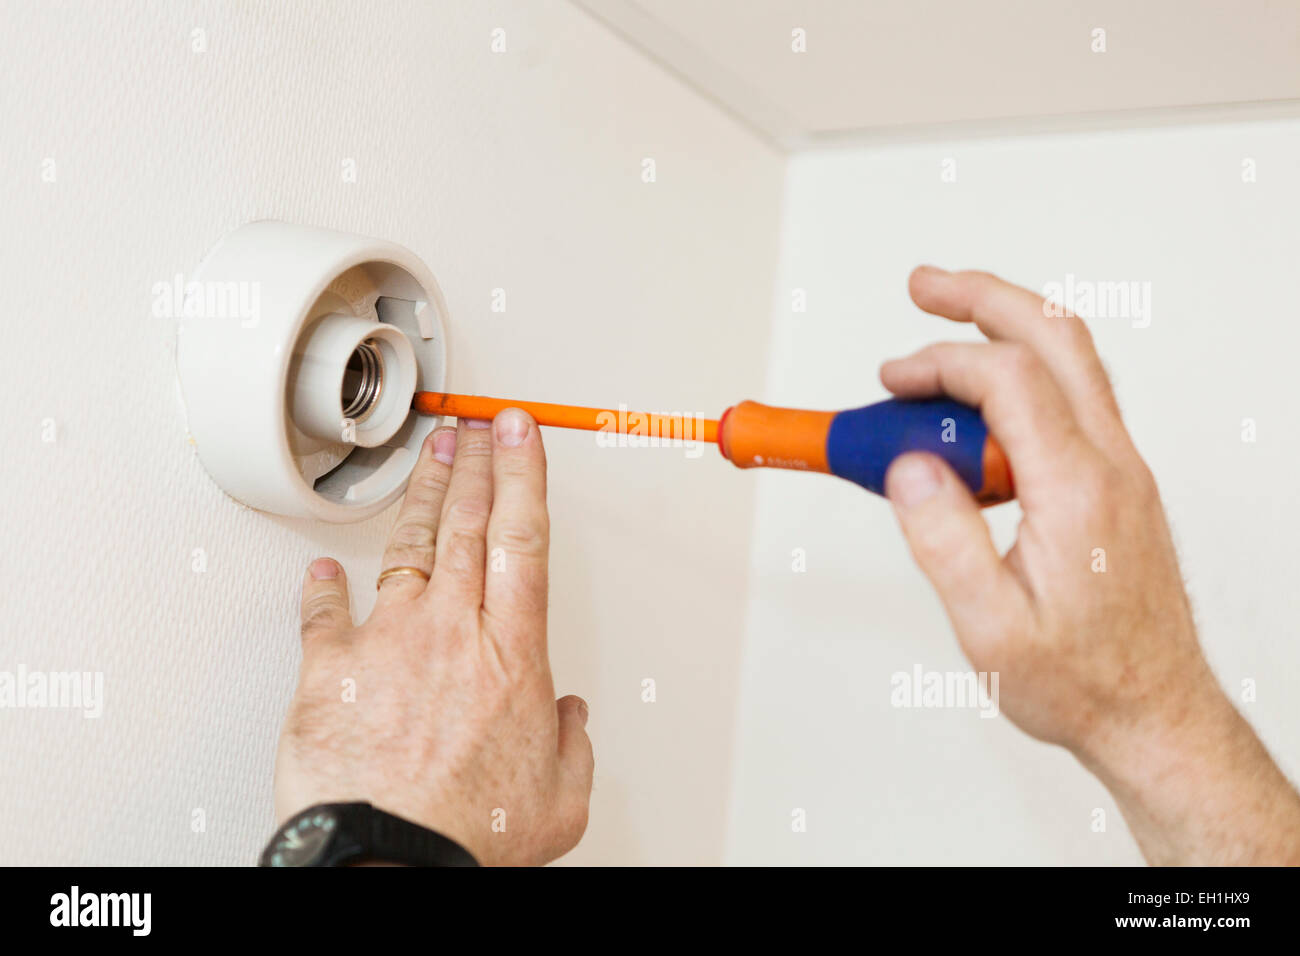 Cropped image of electrician's hands using screwdriver on bulb socket Stock Photo